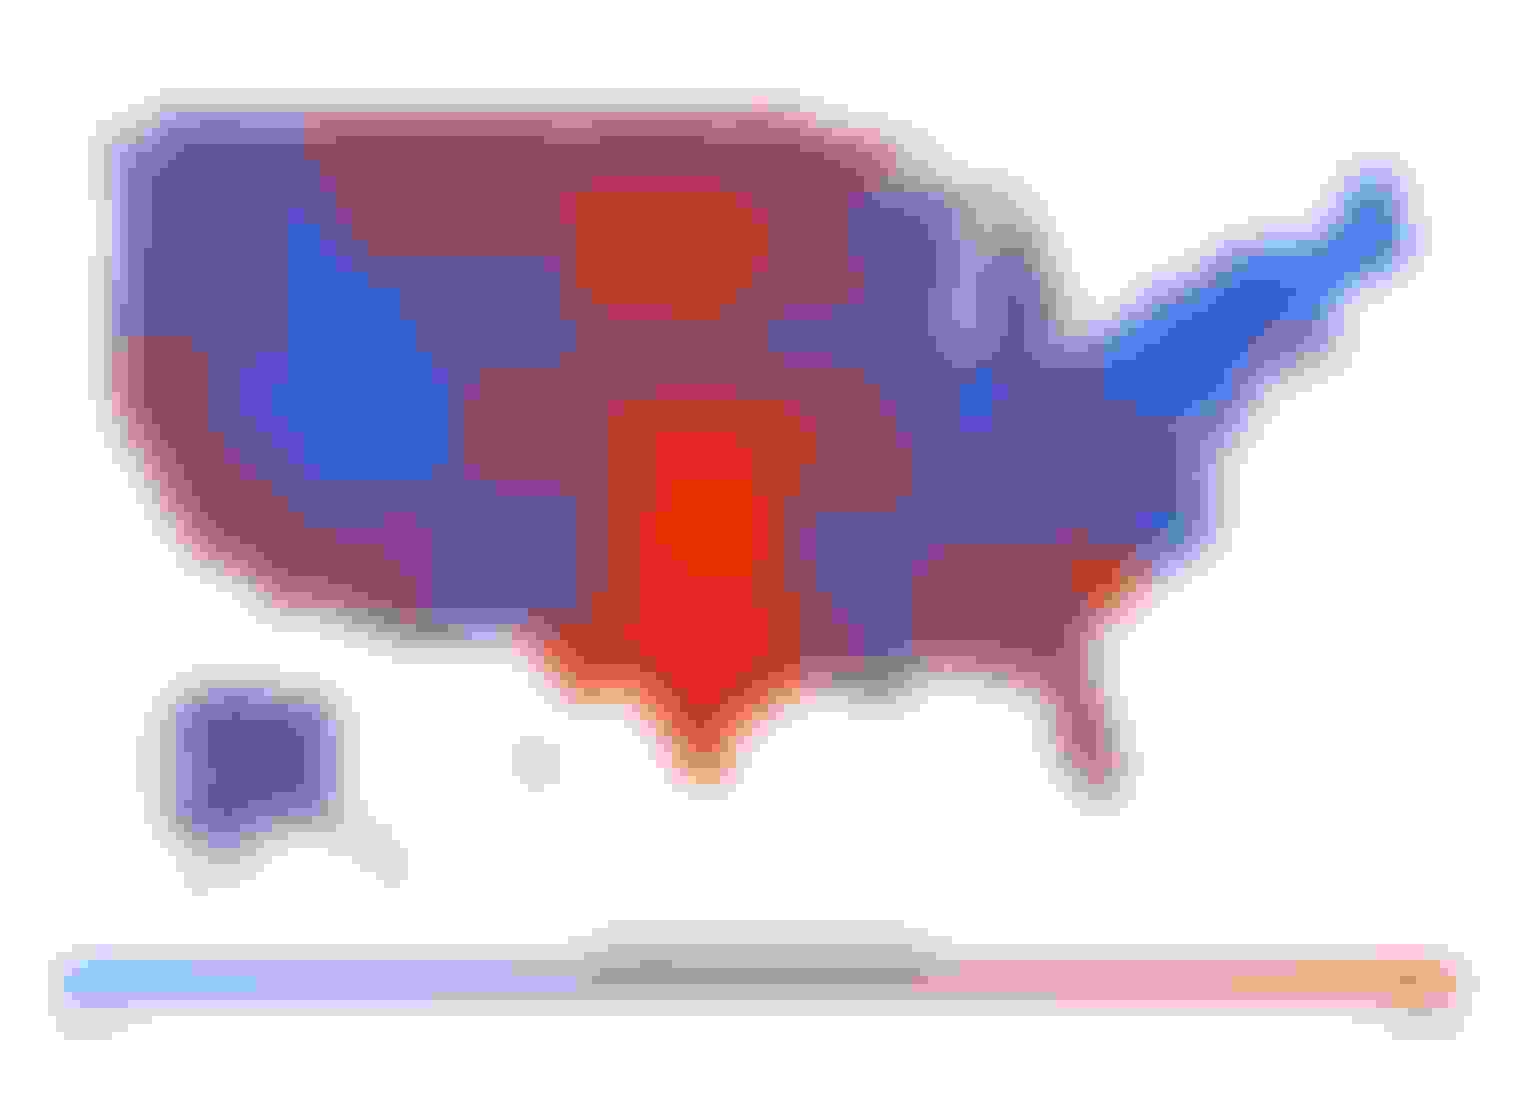 heatmap of the average annual cost of homeowner's insurance